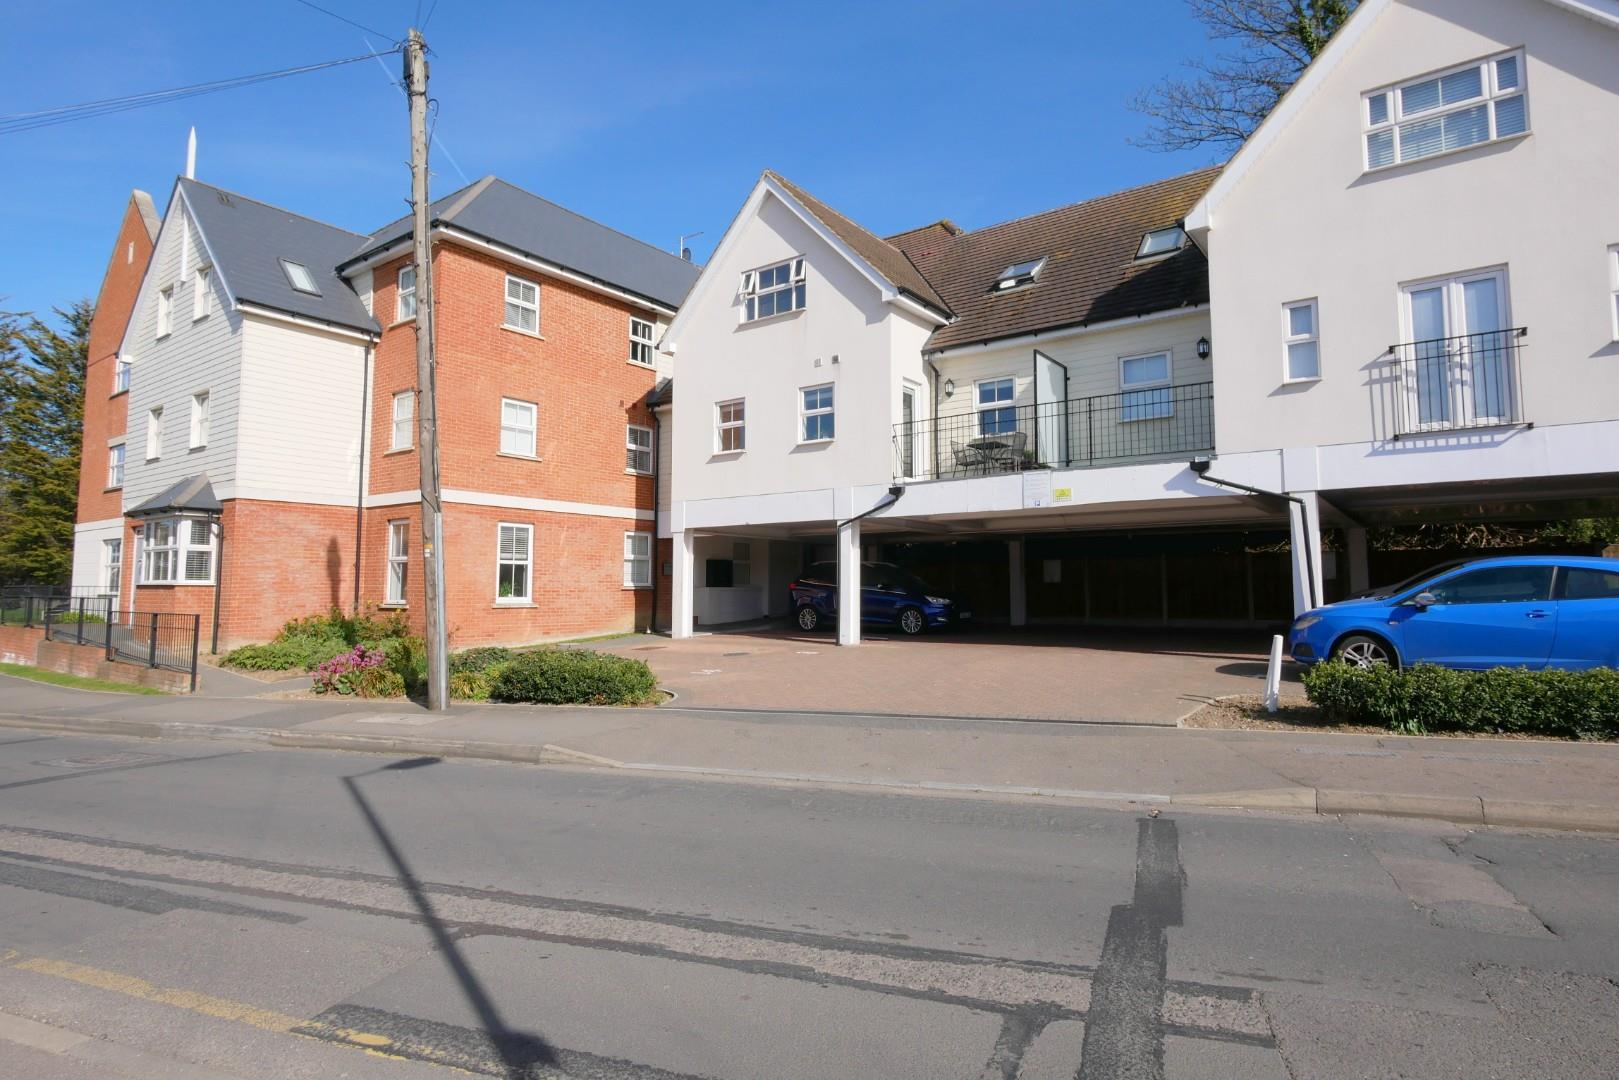 2 bed apartment to rent in The Approach, Rayleigh, SS6